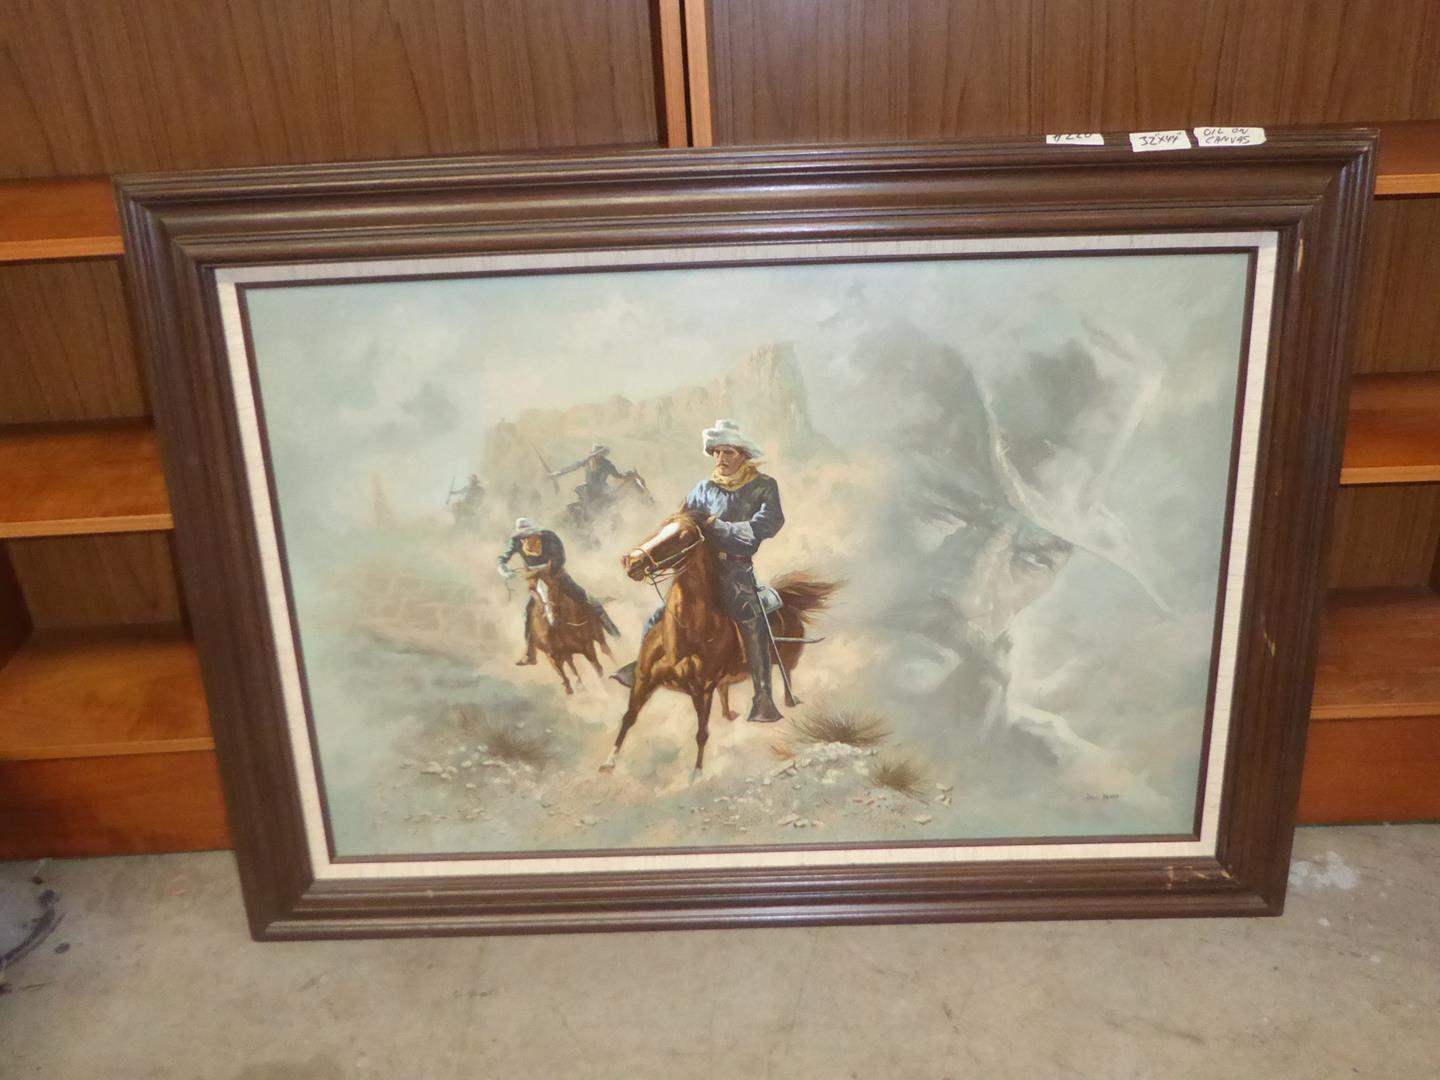 Lot # 220 - Framed Western Oil on Canvas by Bill Bliss (main image)